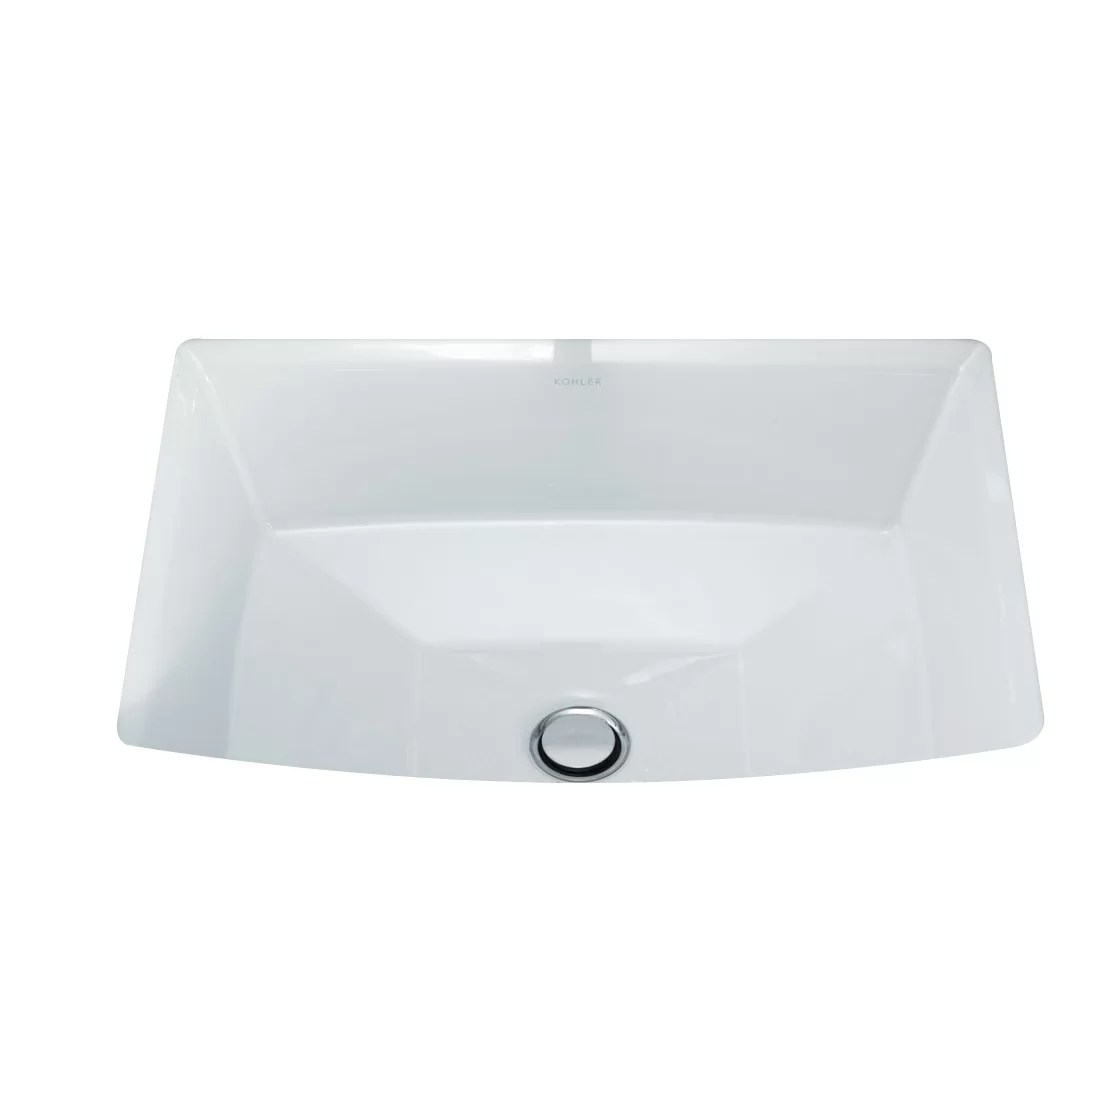 kohler undermount kitchen sink best pull down faucet archer bathroom and reviews wayfair ca